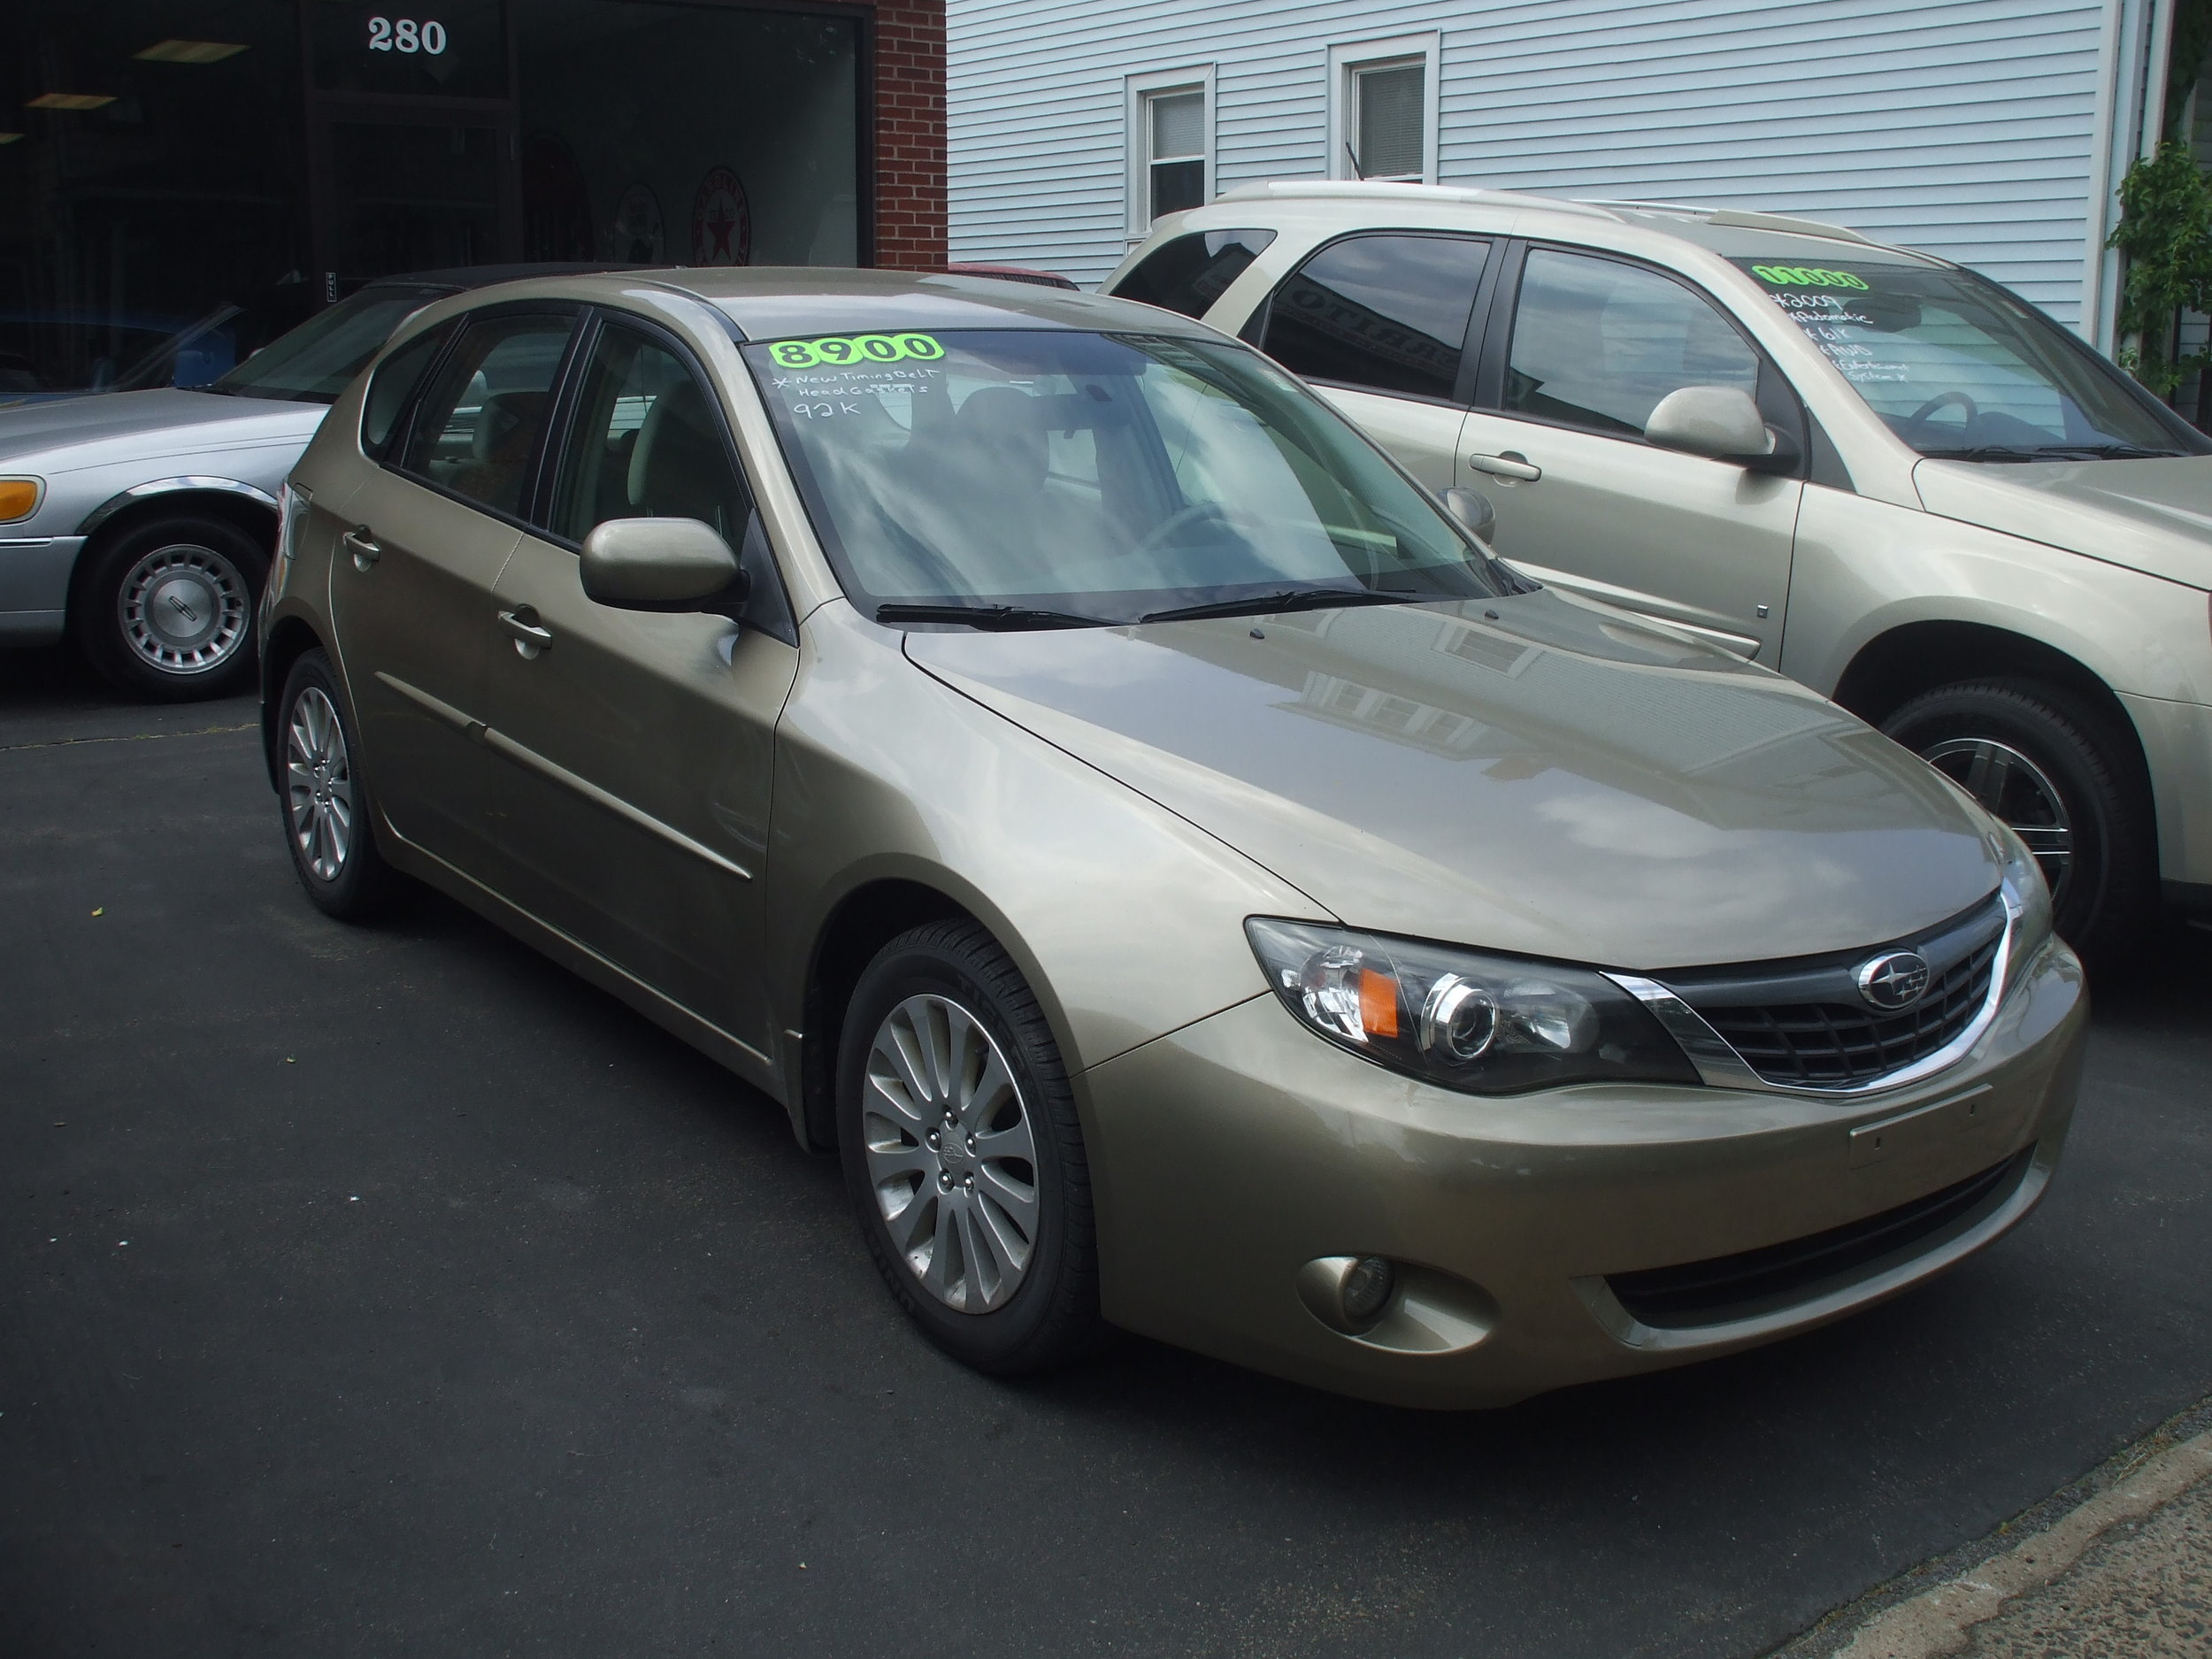 2008 Subaru Impreza 92k $8,900  4door hatch tan automatic pw pl navigation new head gaskets new timing belt great condition stock #17140 Call or Stop By Cerrito's Auto Sales 280 N colony st Wallingford Ct 06492 203-265-6142.